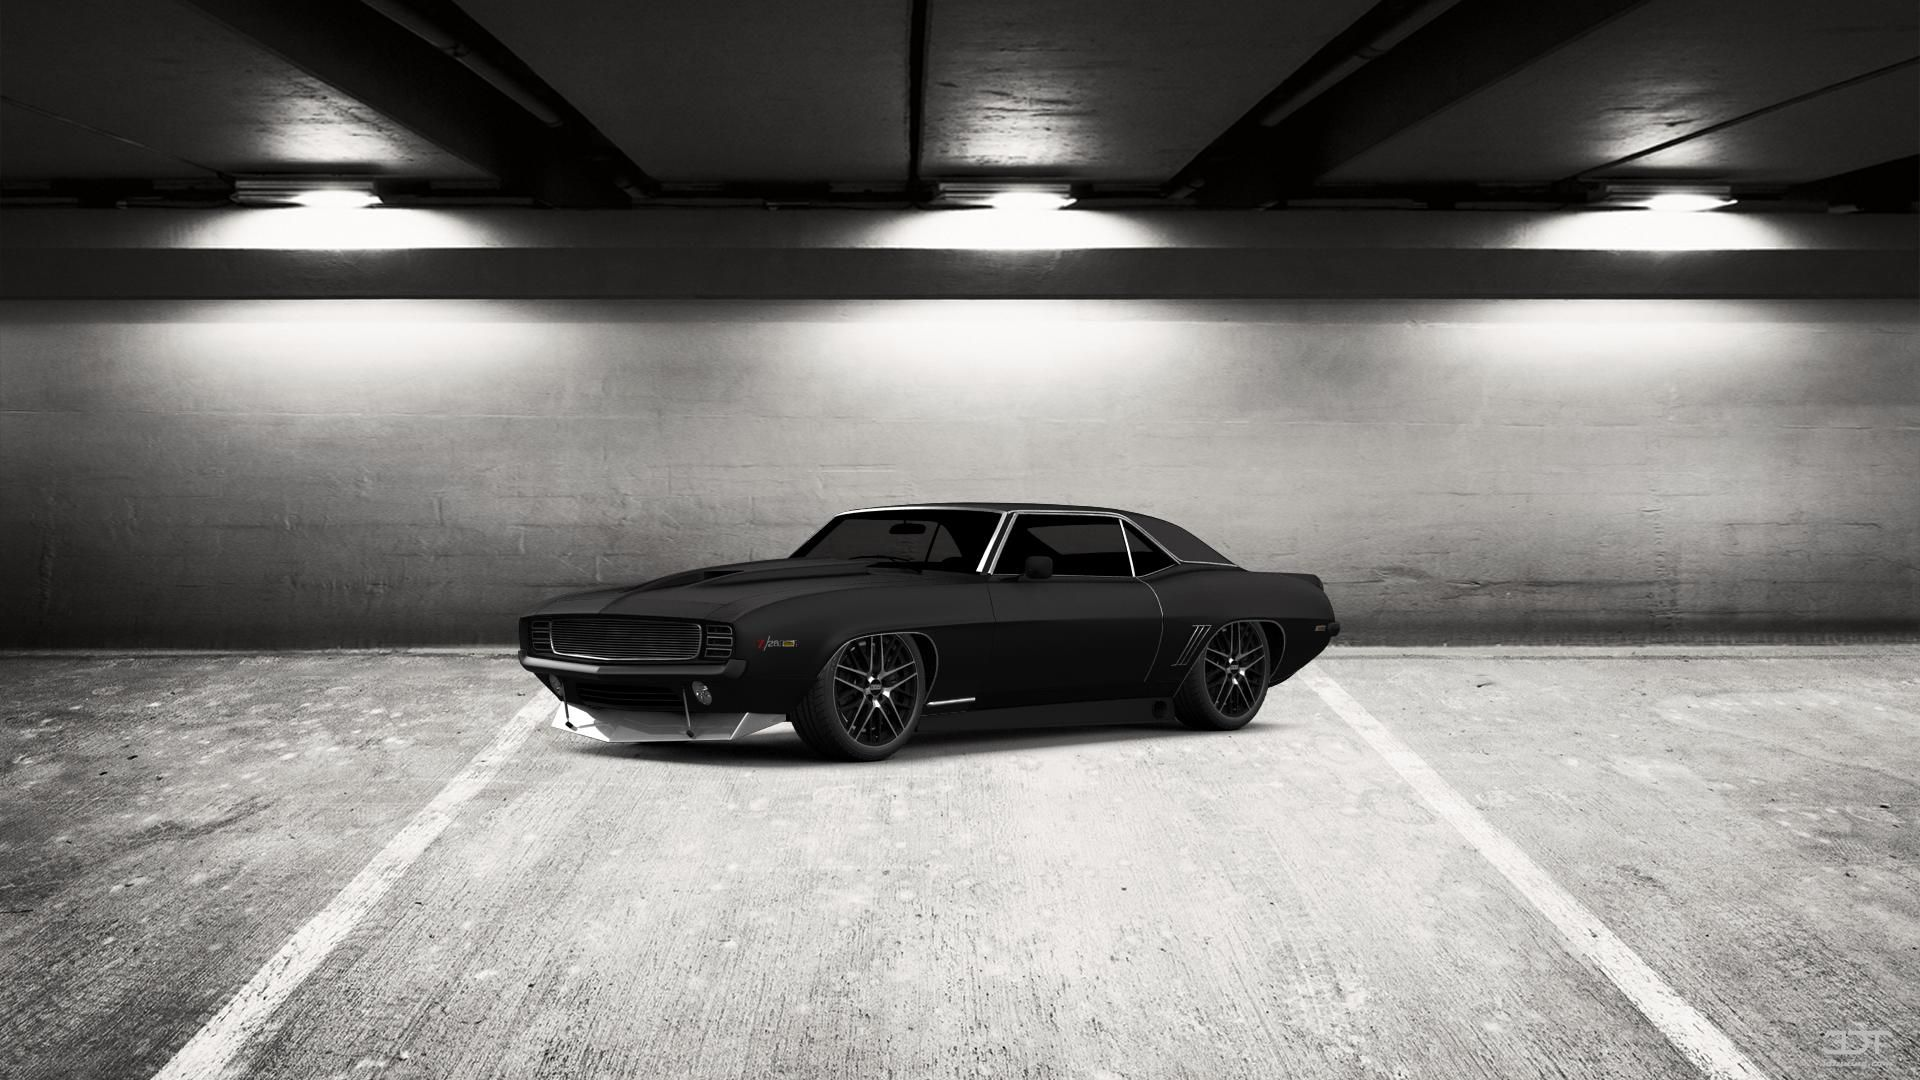 Checkout my tuning Chevrolet CamaroSS 1969 at 3DTuning 3dtuning